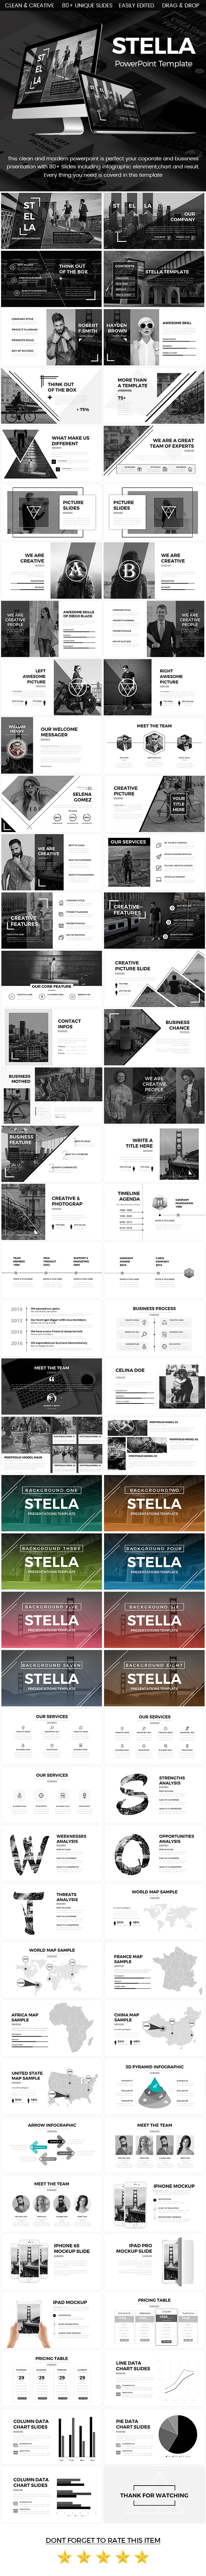 Stella - Creative Powerpoint Template - Creative PowerPoint Templates